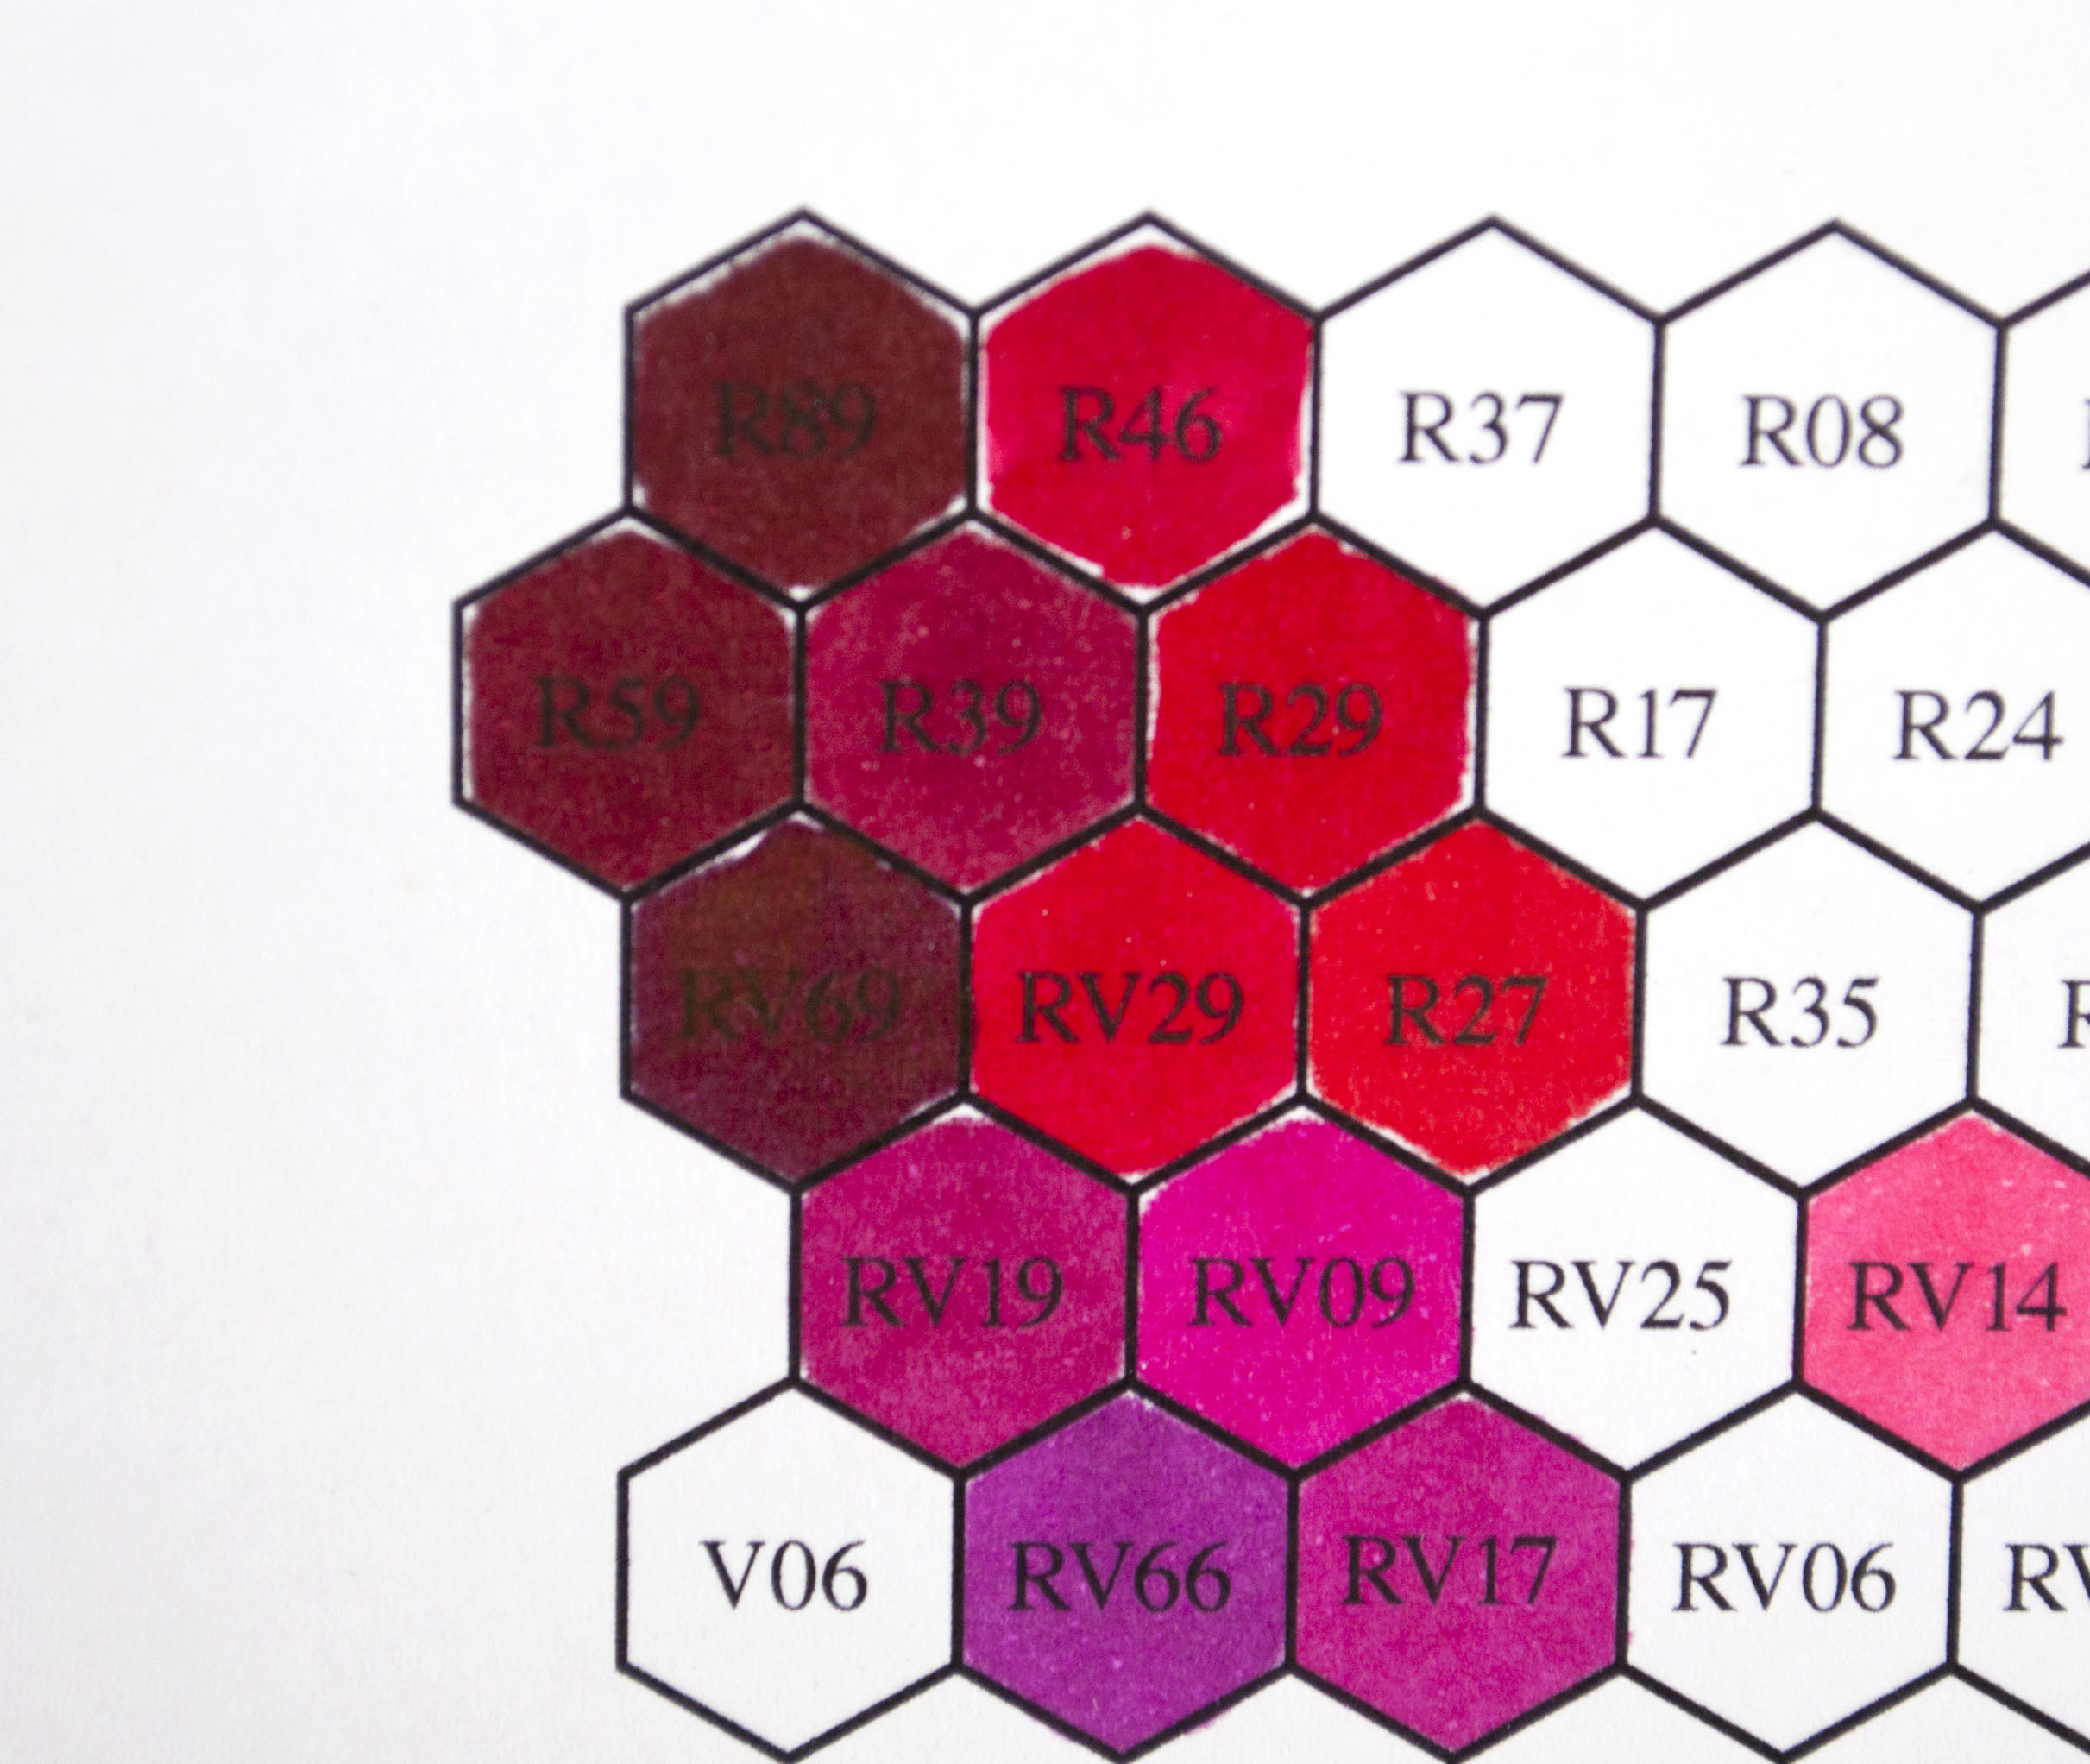 Copic Red Hex Chart.jpg